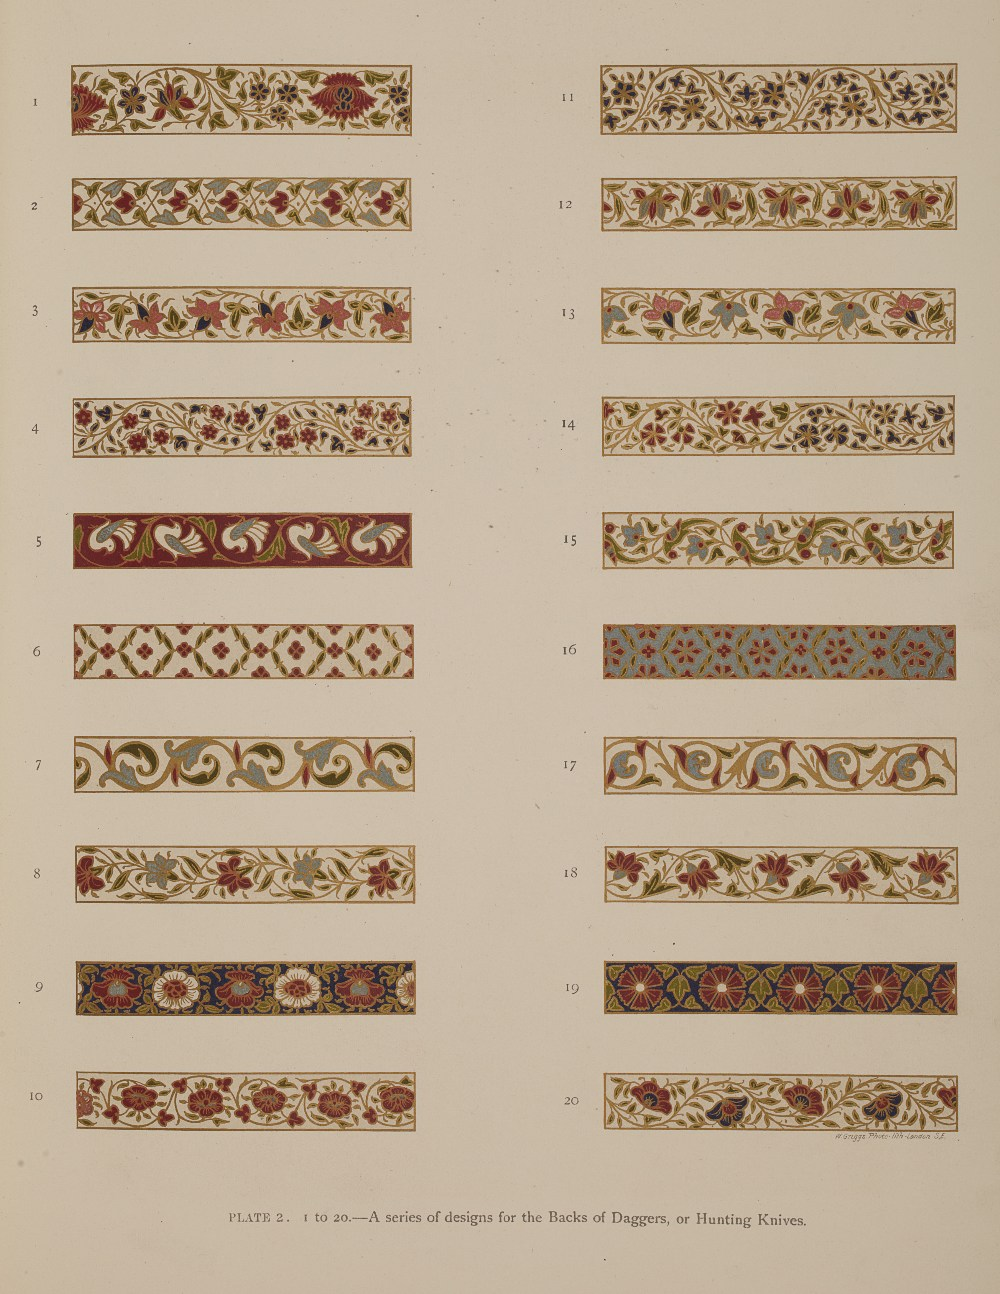 Plate 2. A series of designs for the backs of daggers or hunting knives.